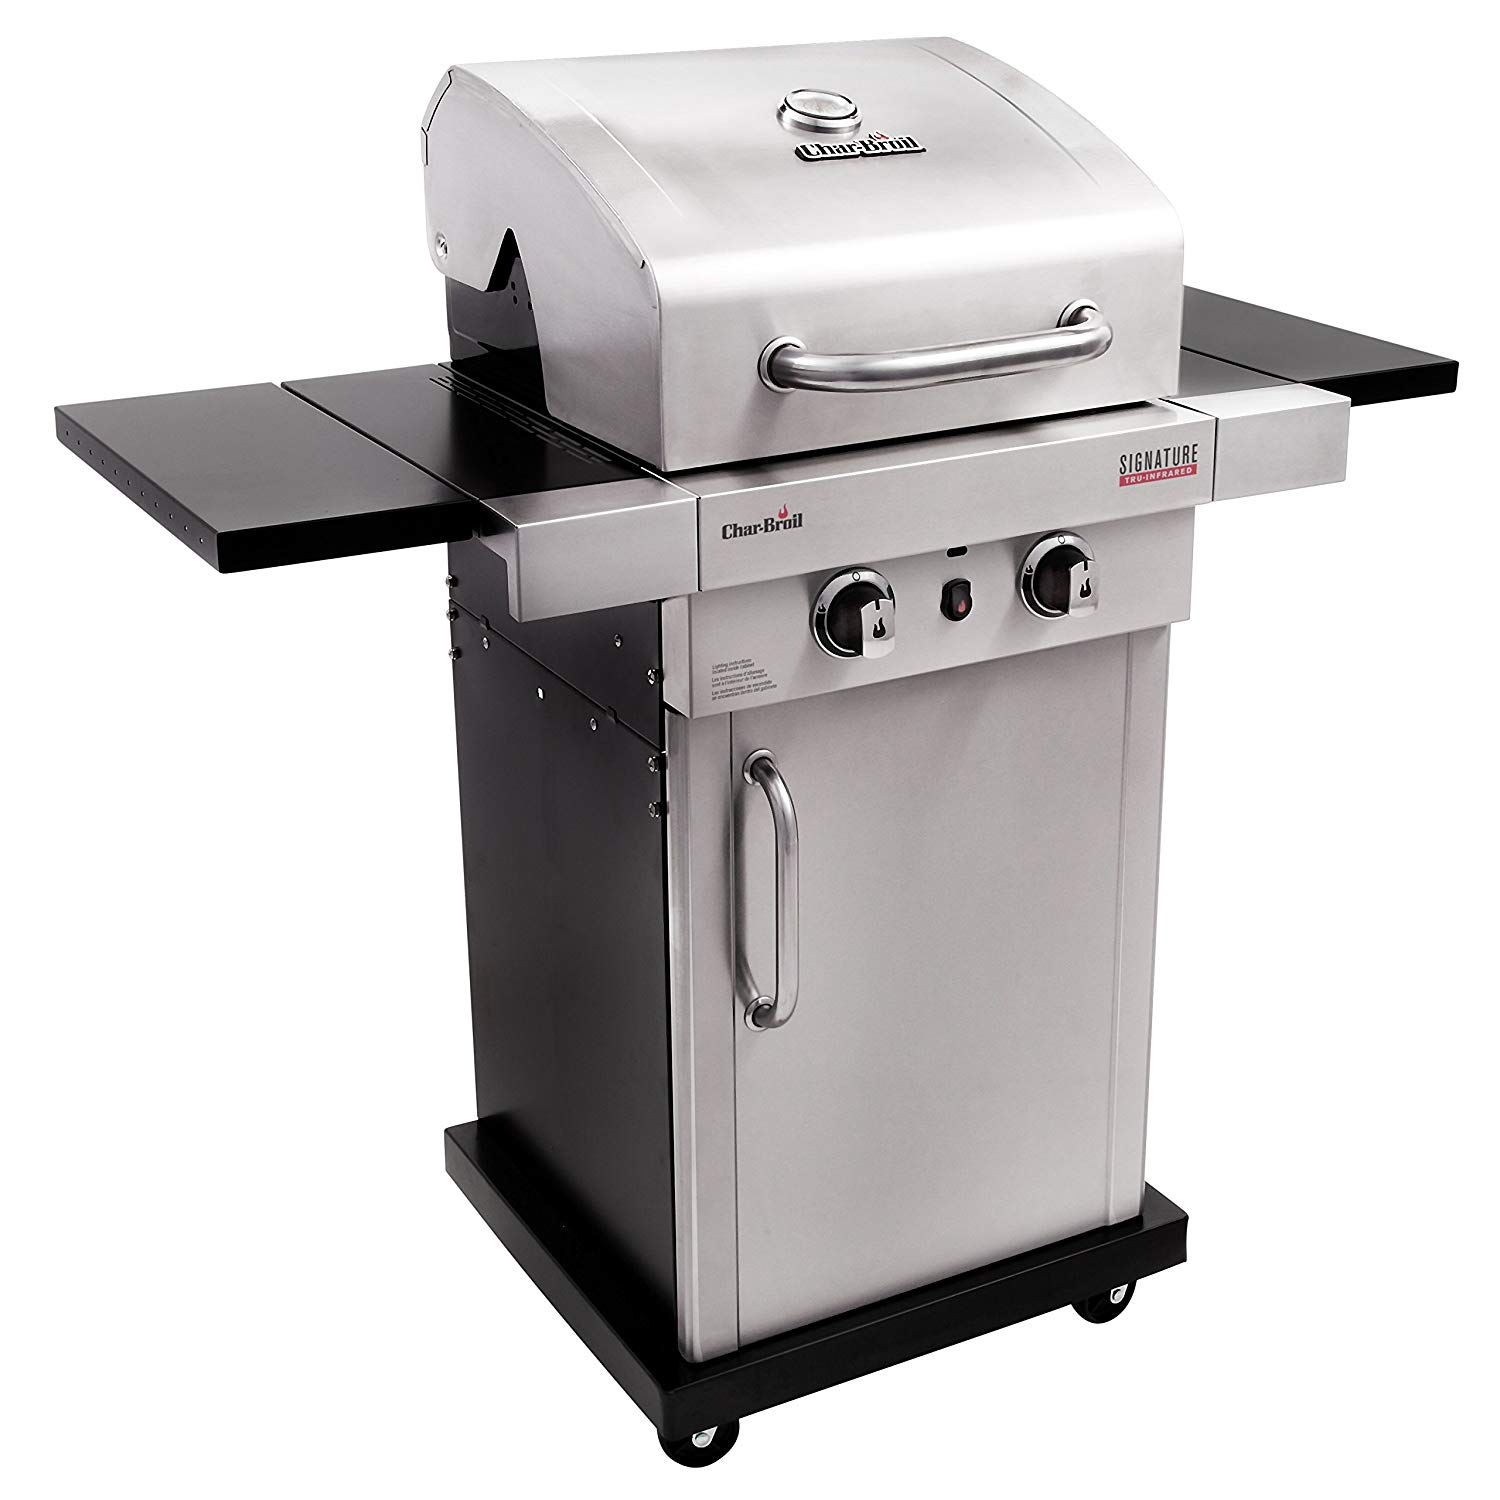 char-broil propane grill